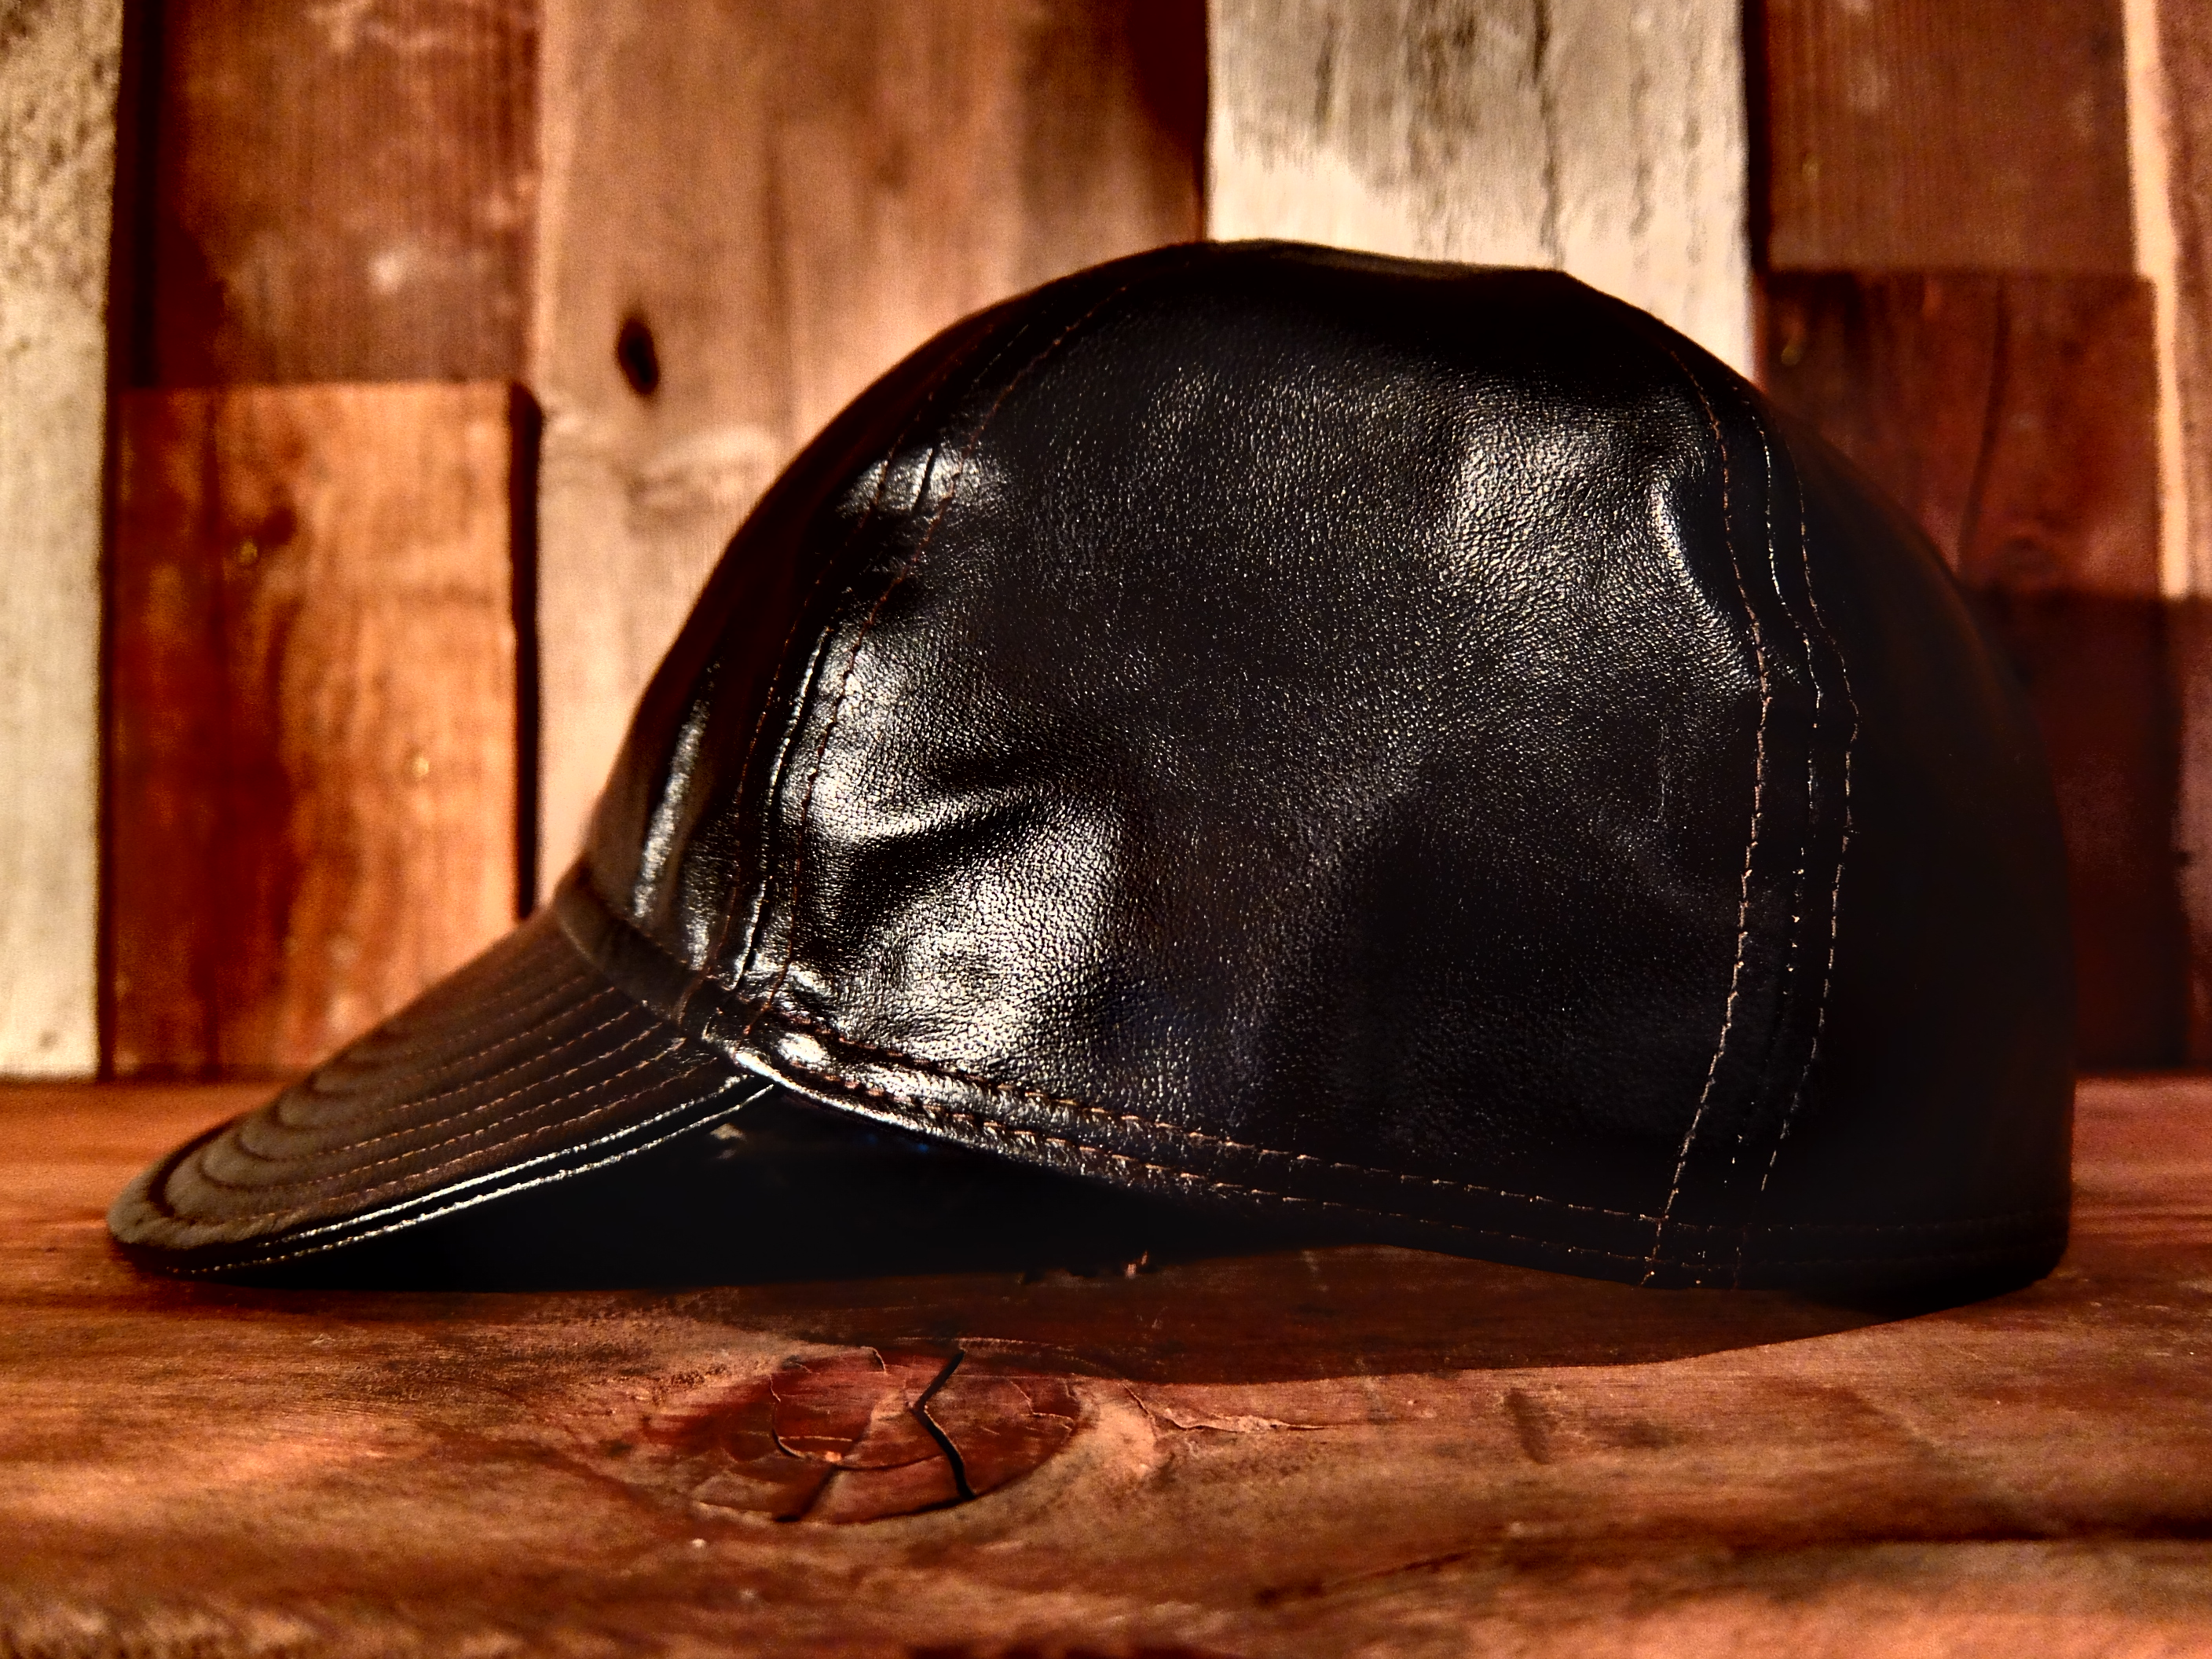 http://www.realmccoys.co.jp/blog/shop/images/leather_mechanic_cap2.JPG